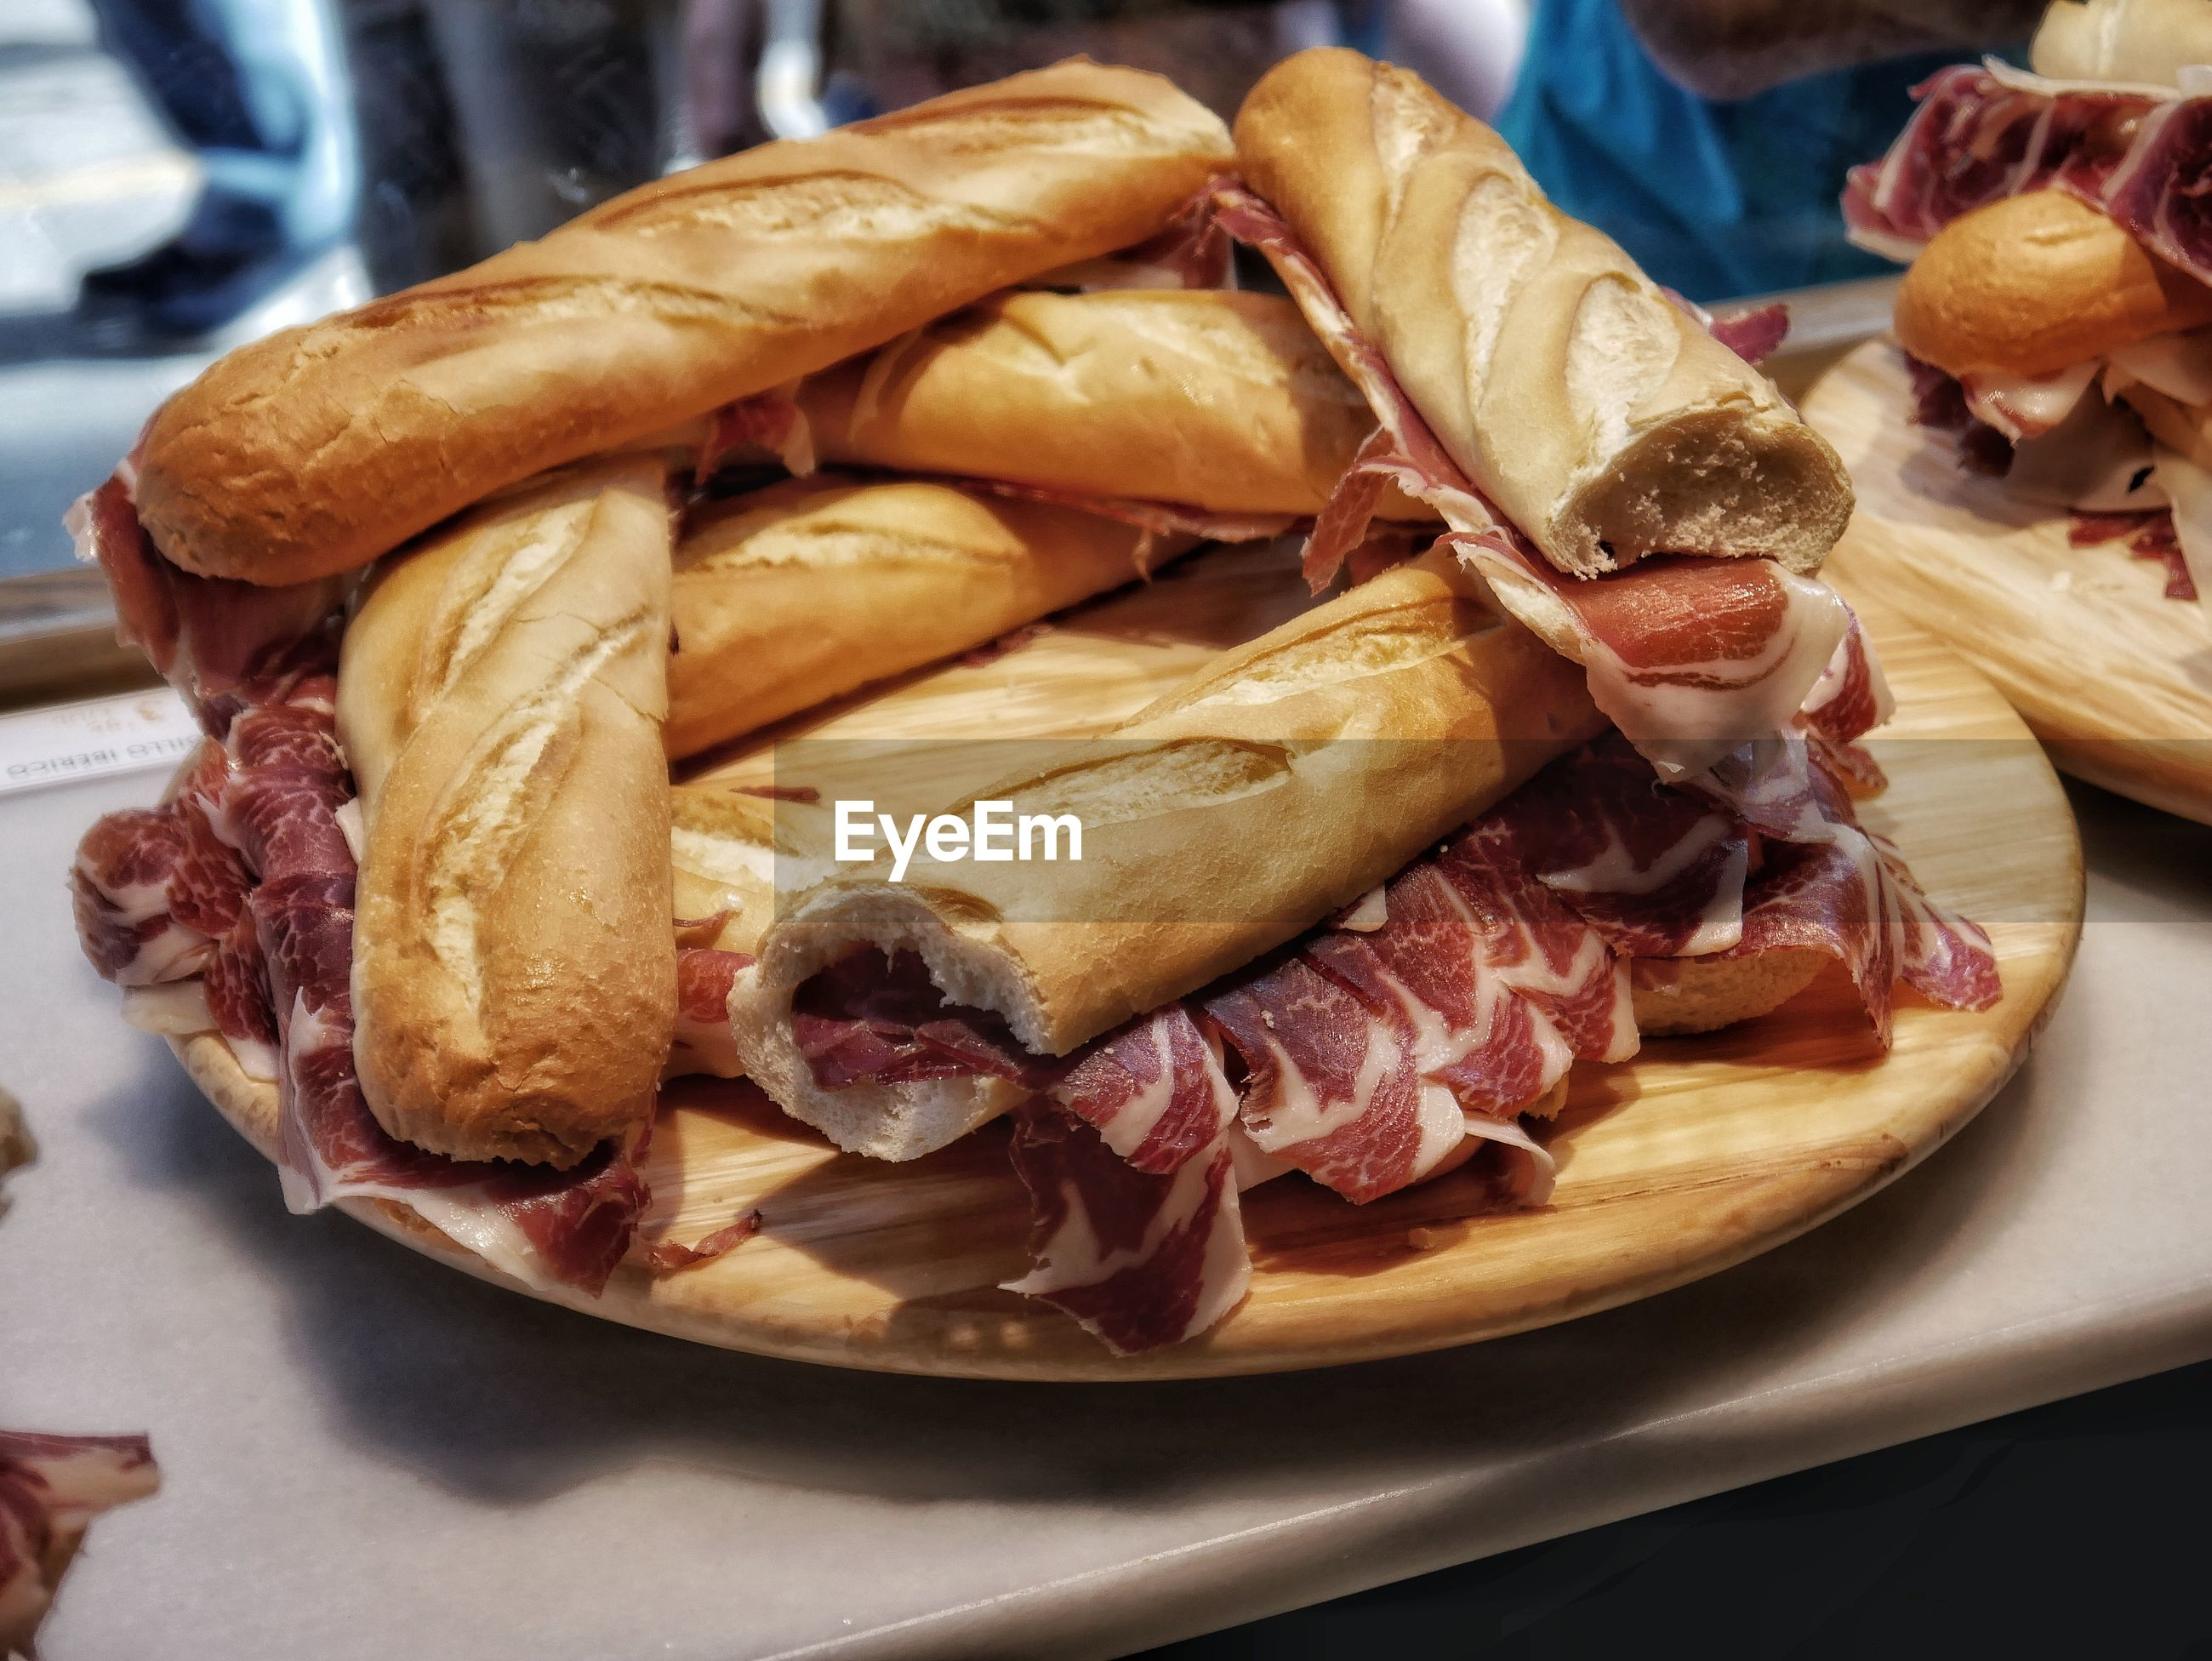 Jamon and baguette